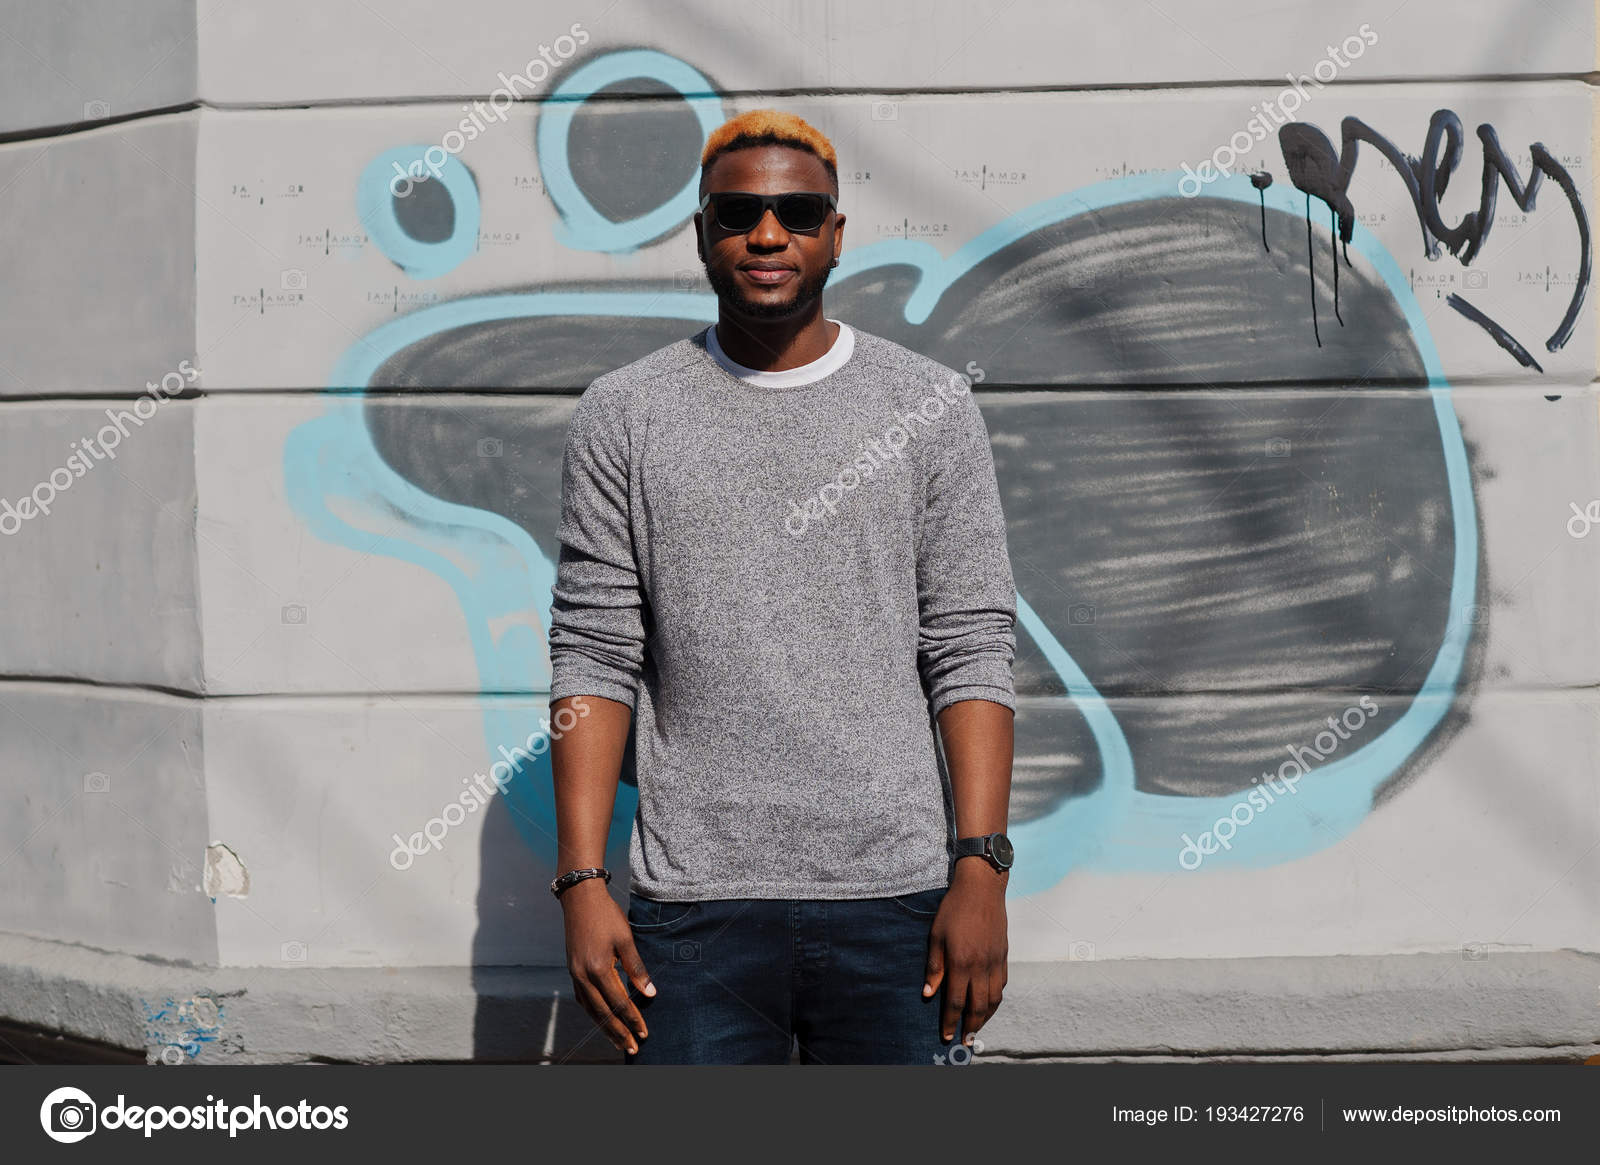 dbce041013a Stylish african american boy on gray sweater and black sunglasses posed at  street. Fashionable black guy against graffity wall. — Photo by ASphoto777